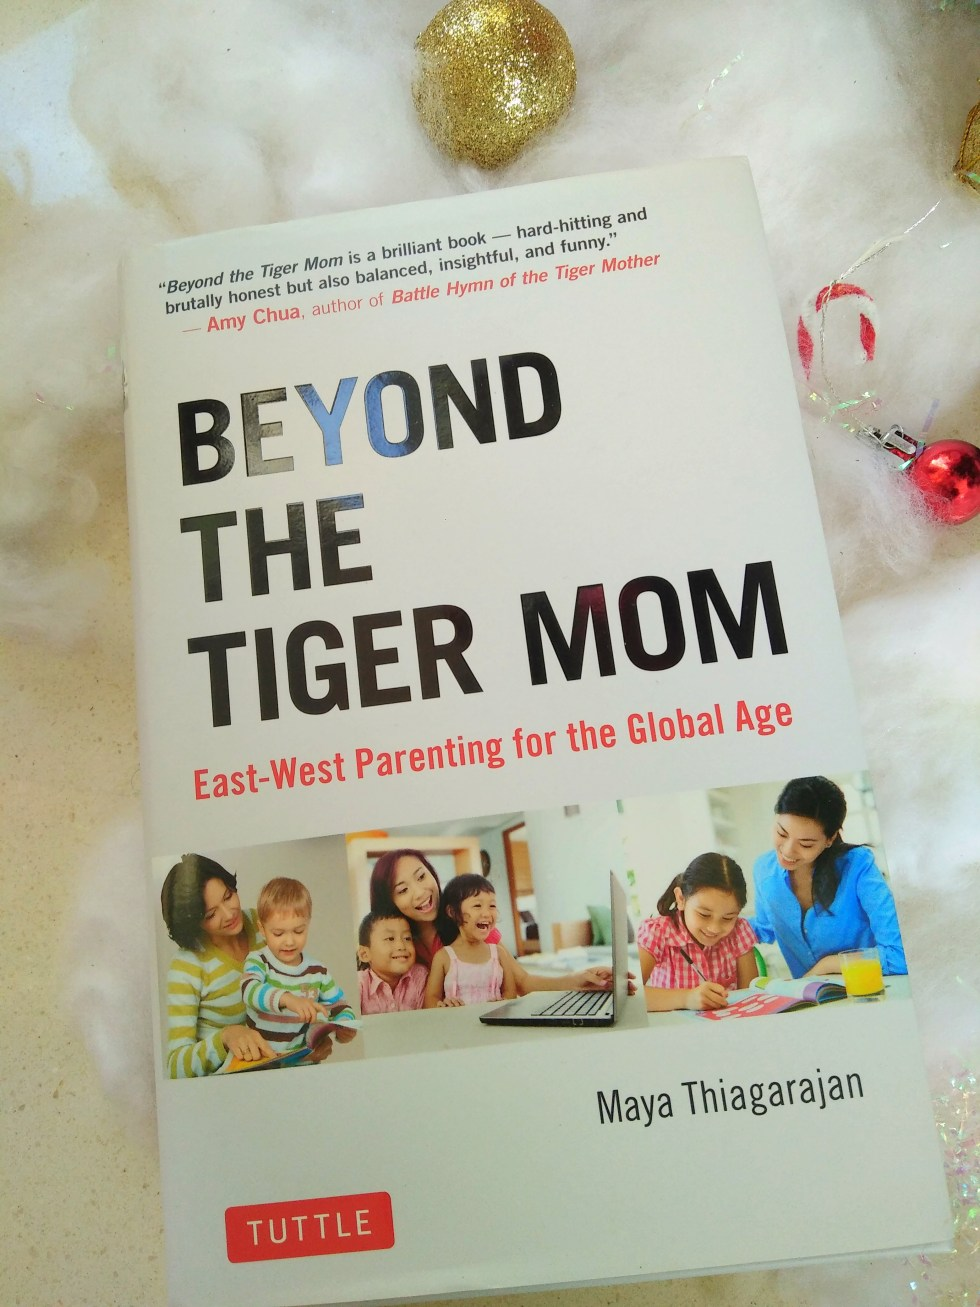 Beyond the tger mom